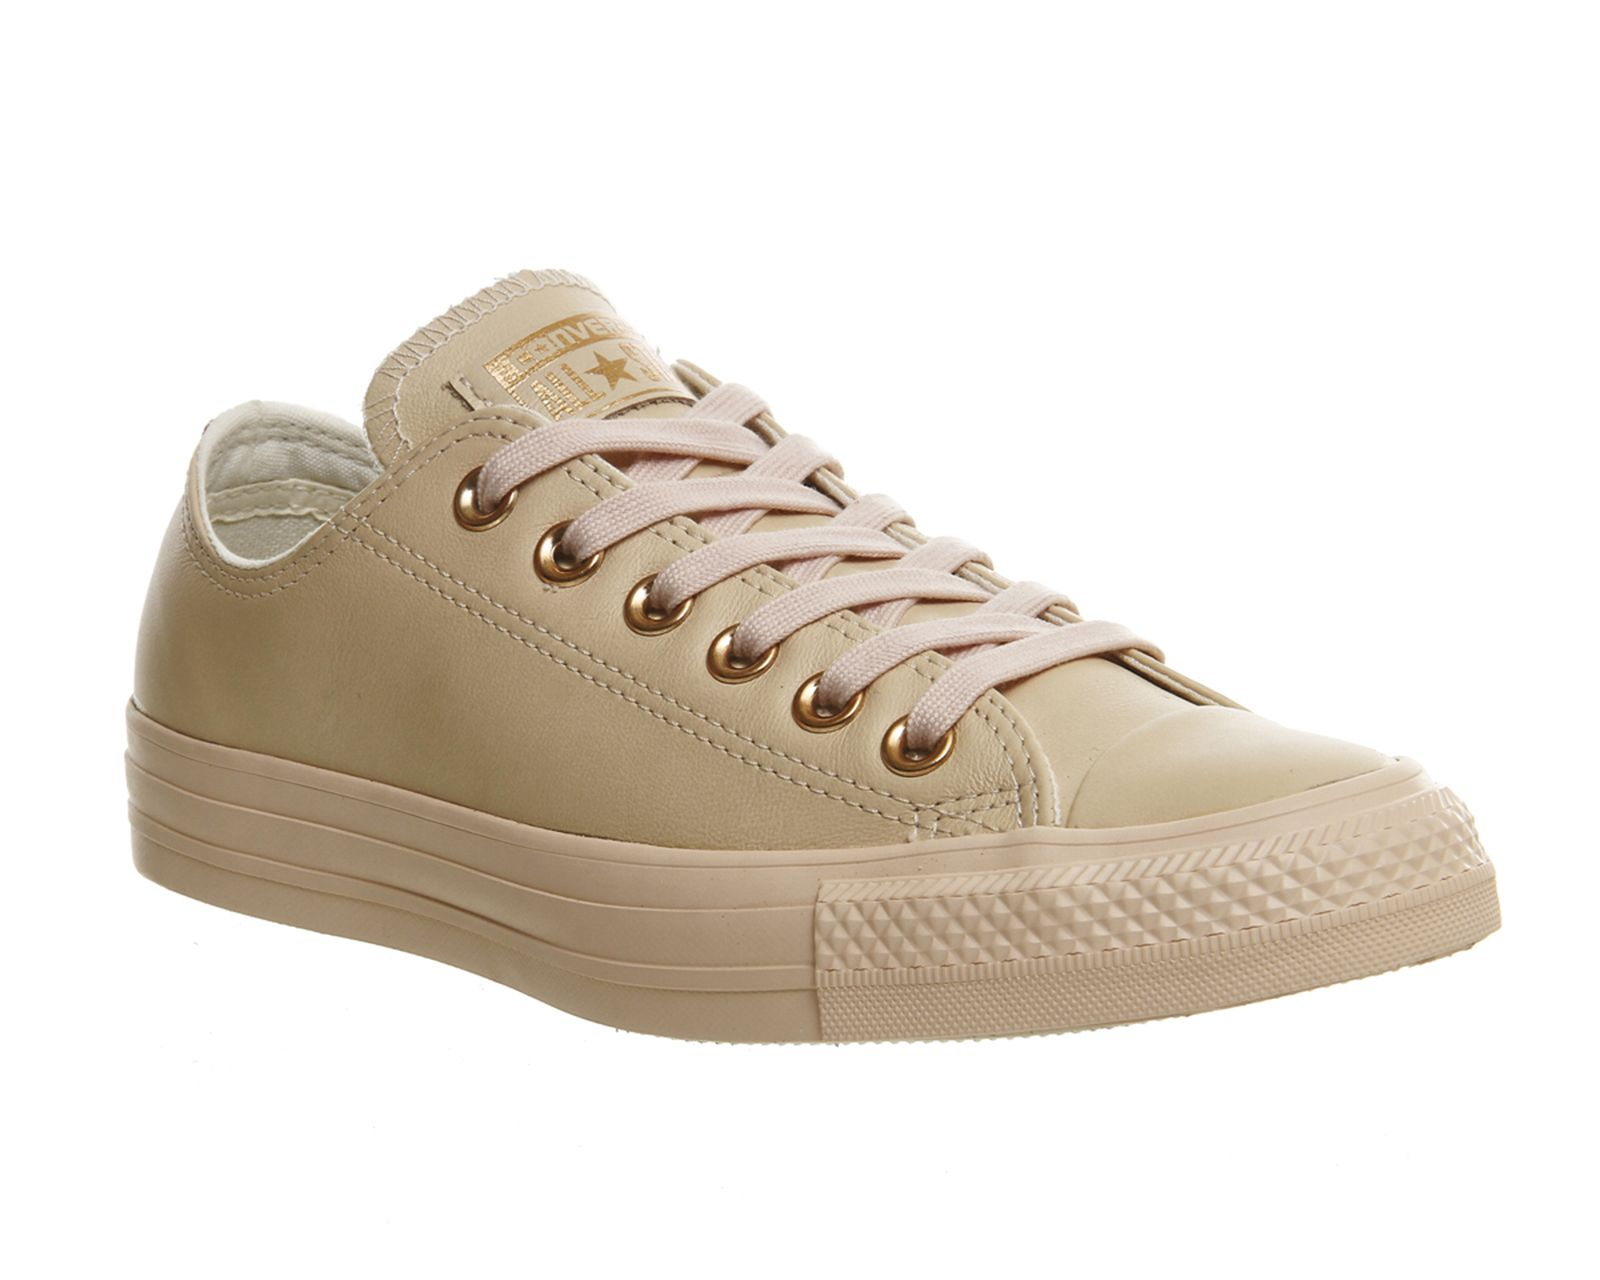 Converse ALL STAR Sneaker in pelle Scarpe Marrone g e 39